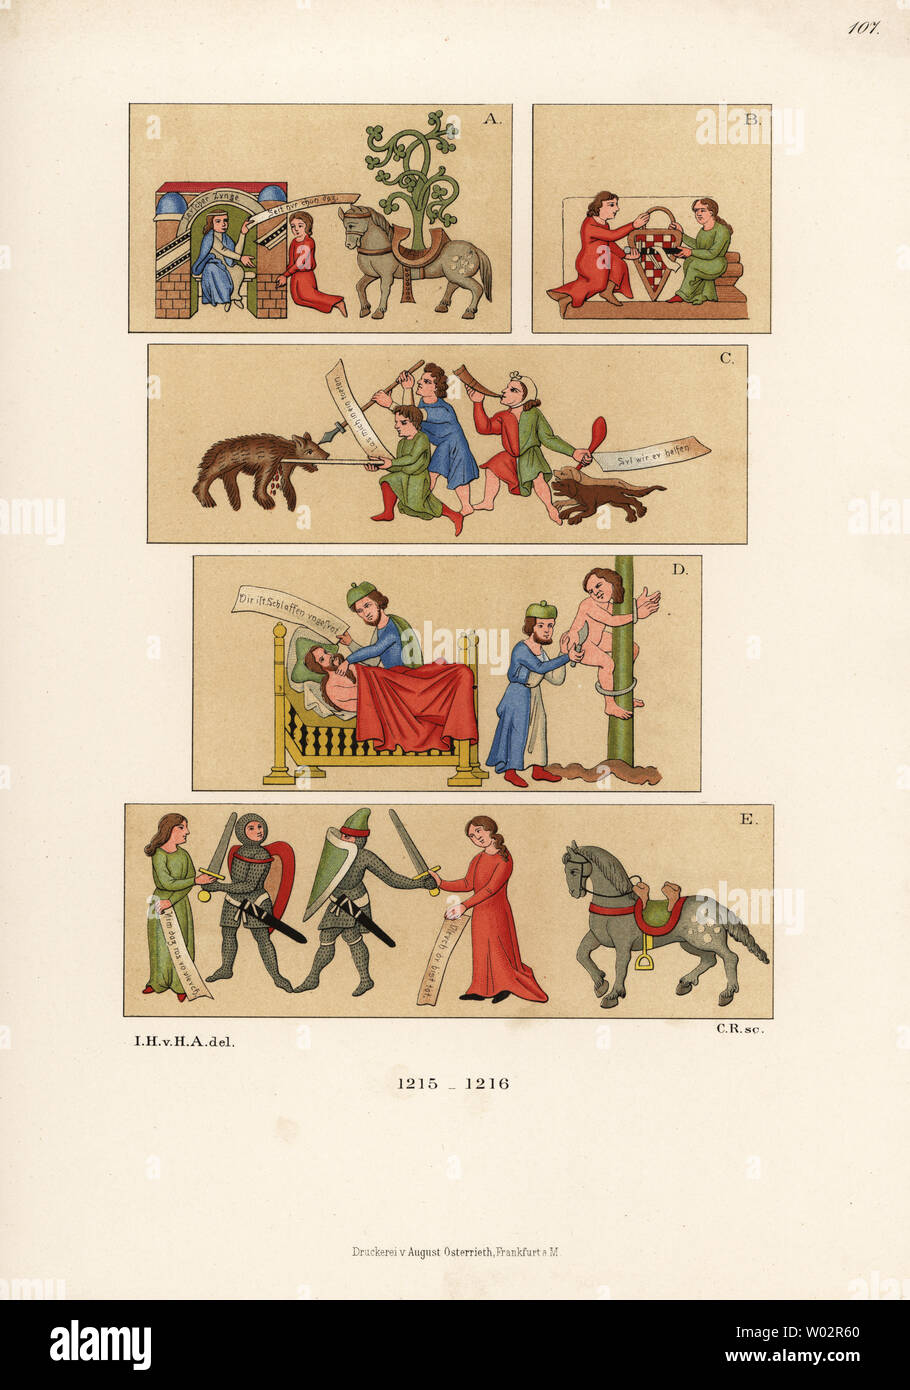 Costumes from the early 13th century. From a manuscript of Thomasin von Zirclaere's Der Walsche Gast. Symbolic scenes of a couple (German youth) with horse and tree A, Cicero and Rhetorica B, boar hunting C, allegorical scene of a doctor (God) and man D, and young knights arguing E. Chromolithograph from Hefner-Alteneck's Costumes, Artworks and Appliances from the Middle Ages to the 17th Century, Frankfurt, 1889. Illustration by Dr. Jakob Heinrich von Hefner-Alteneck, lithographed by C.R. Dr. Hefner-Alteneck (1811 - 1903) was a German museum curator, archaeologist, art historian, illustrator a - Stock Image